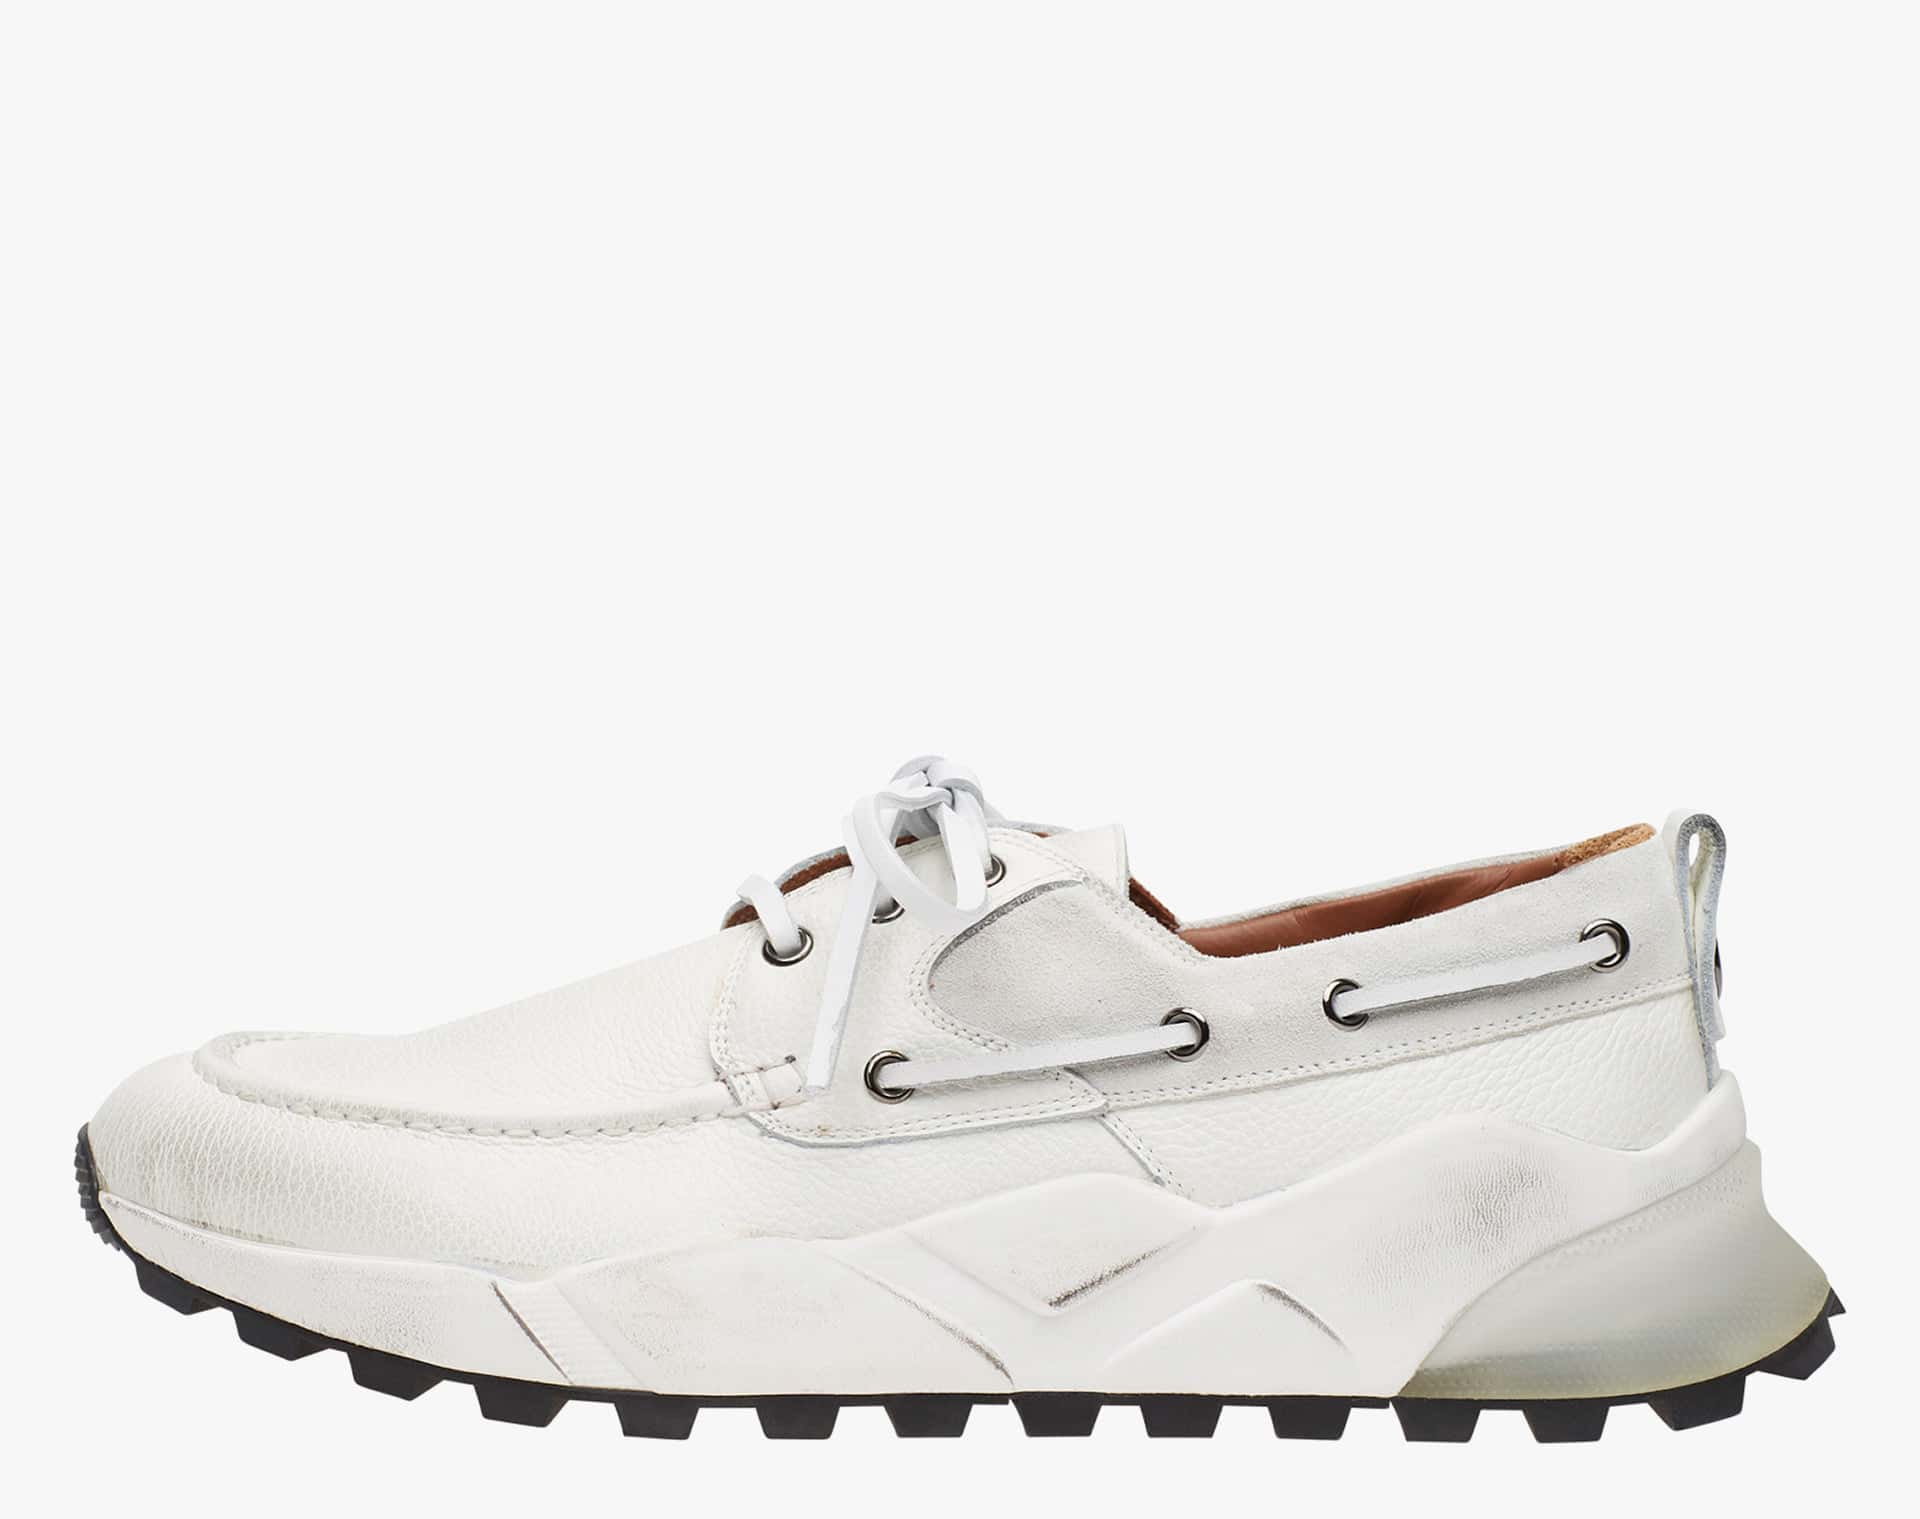 EXTREEMER - Drum dyed calfskin sailor sneakers - White